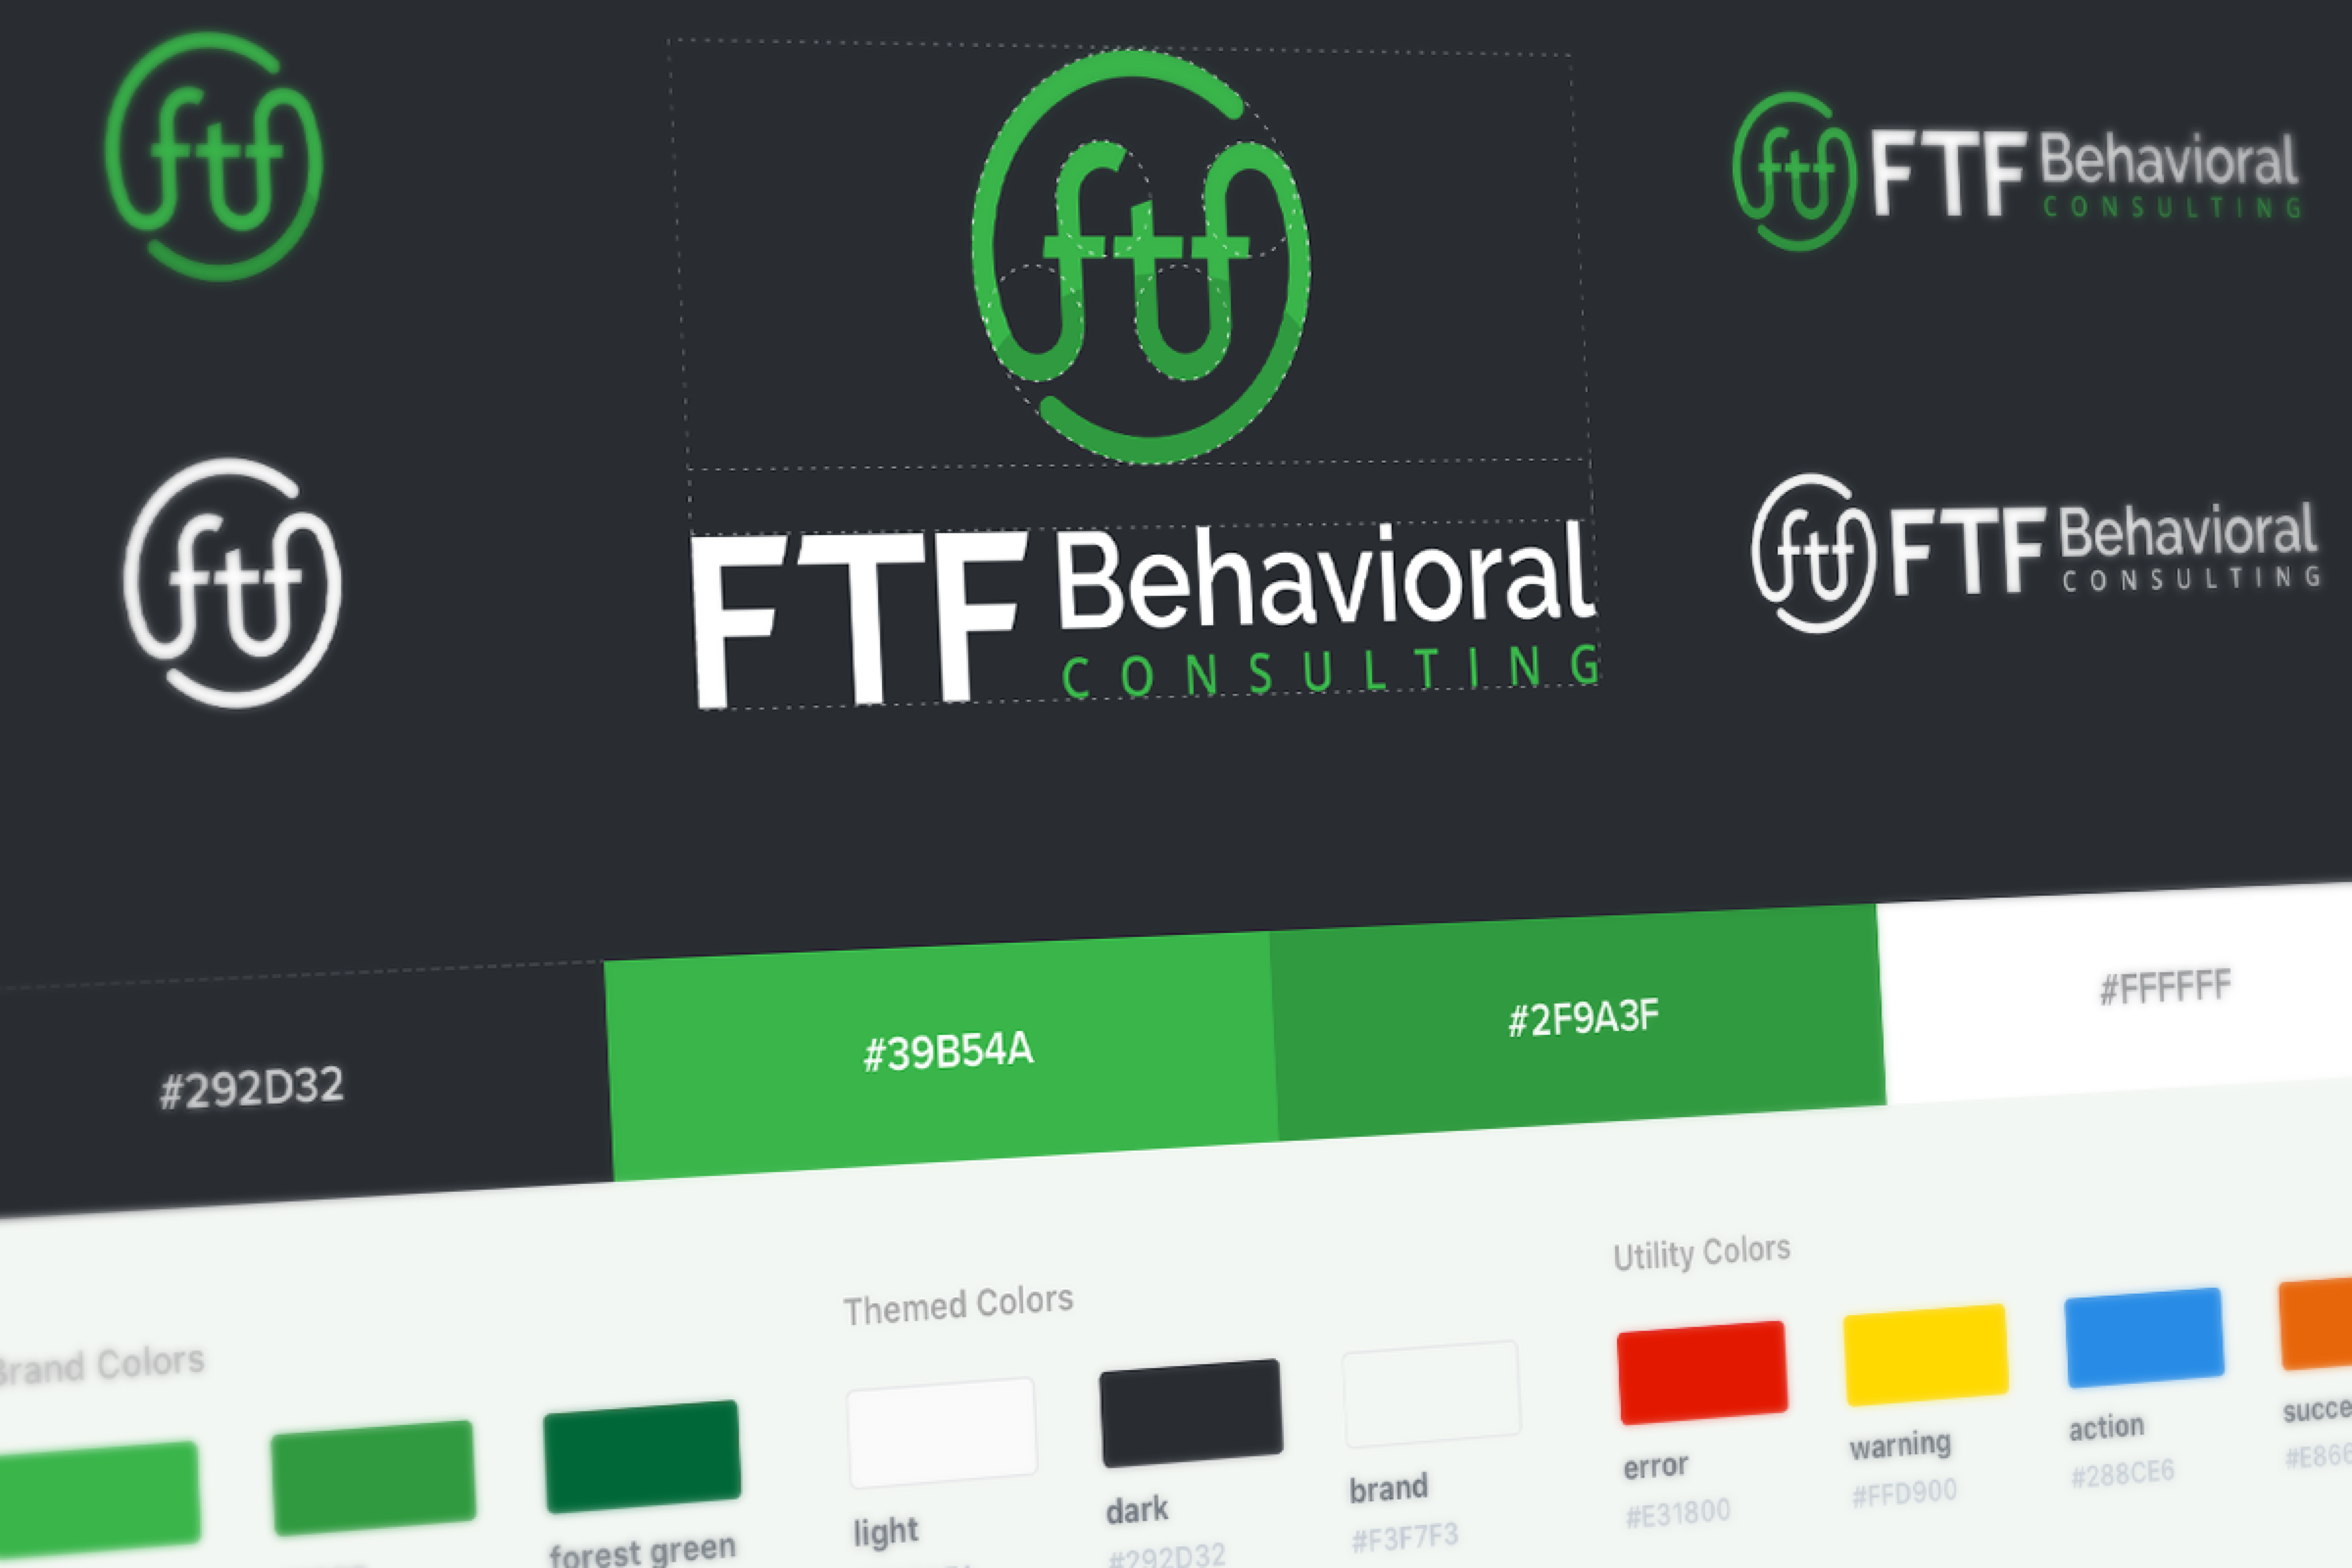 Image of FTF's final branding and color theme